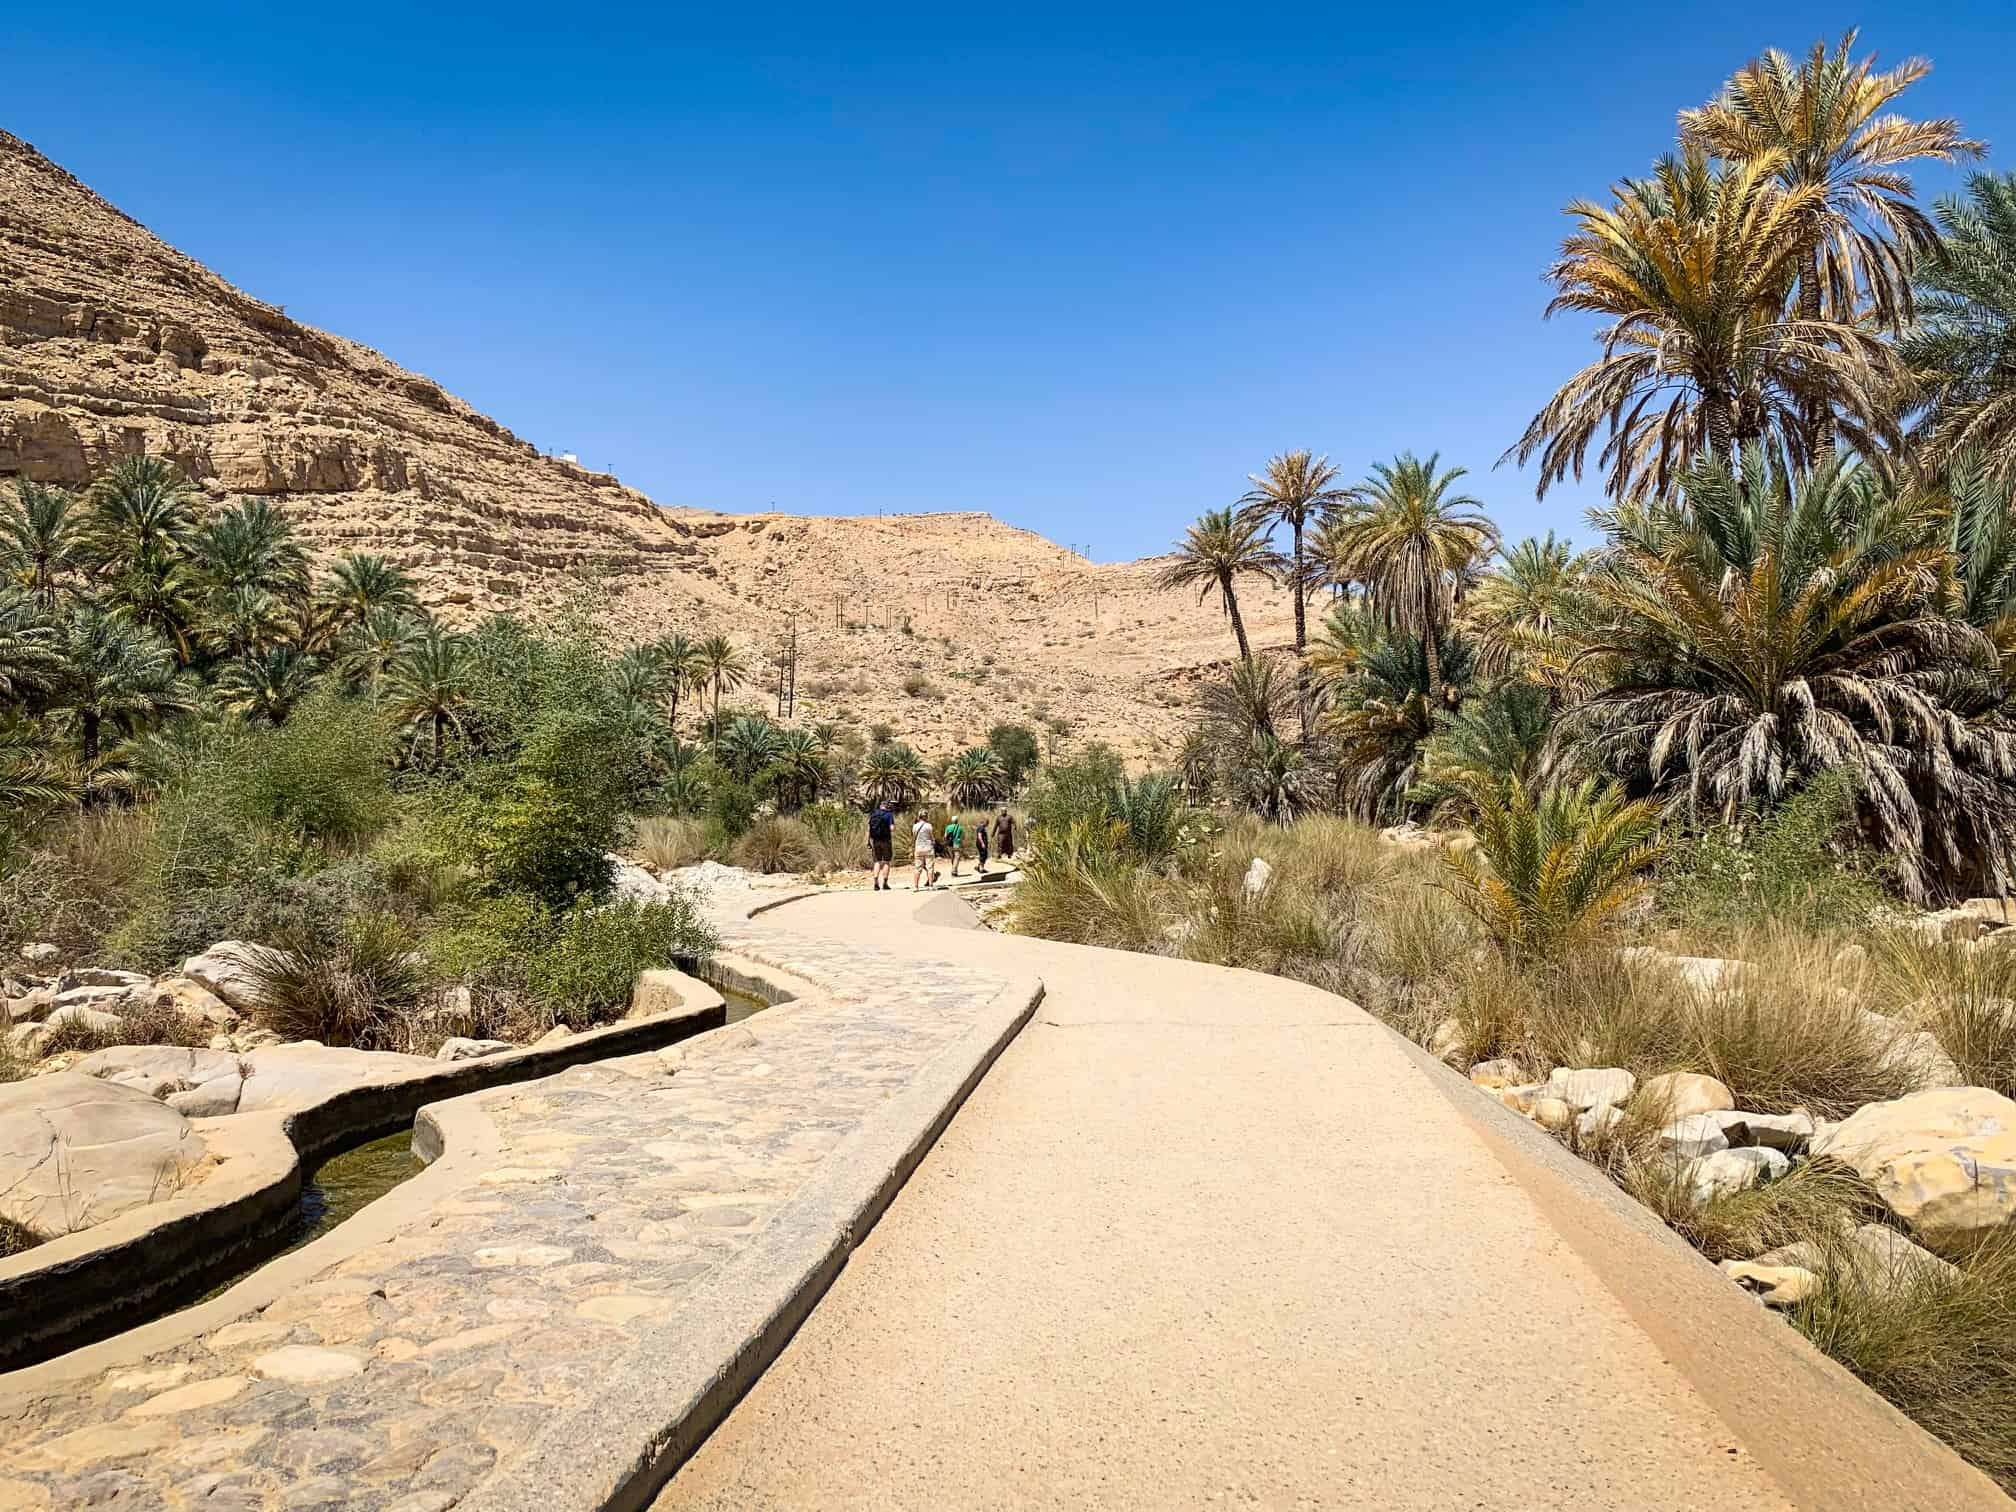 Parking lot walkway to Wadi Bani Khalid